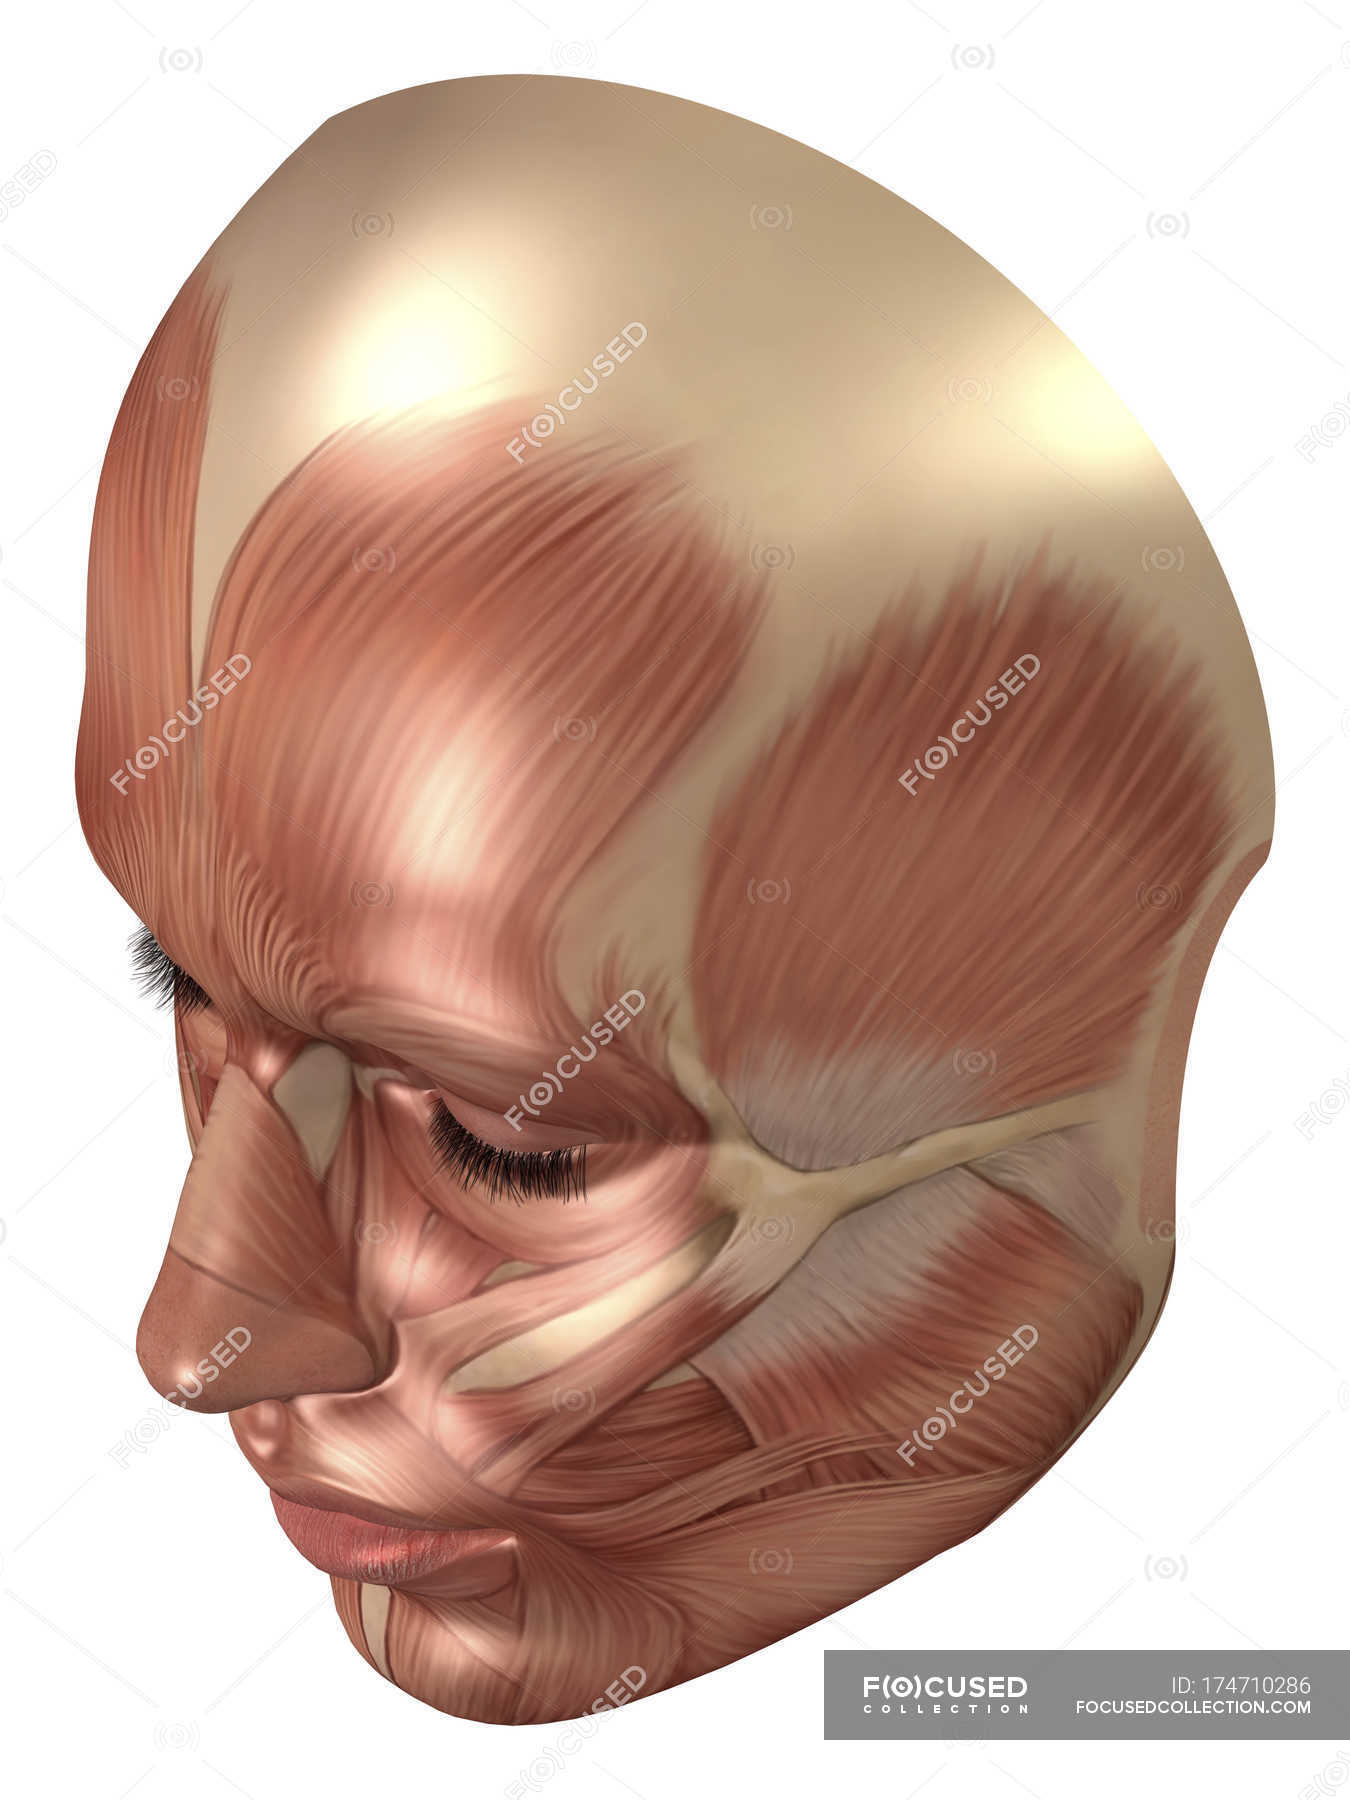 Anatomy Of Human Face Muscles Stock Photo 174710286